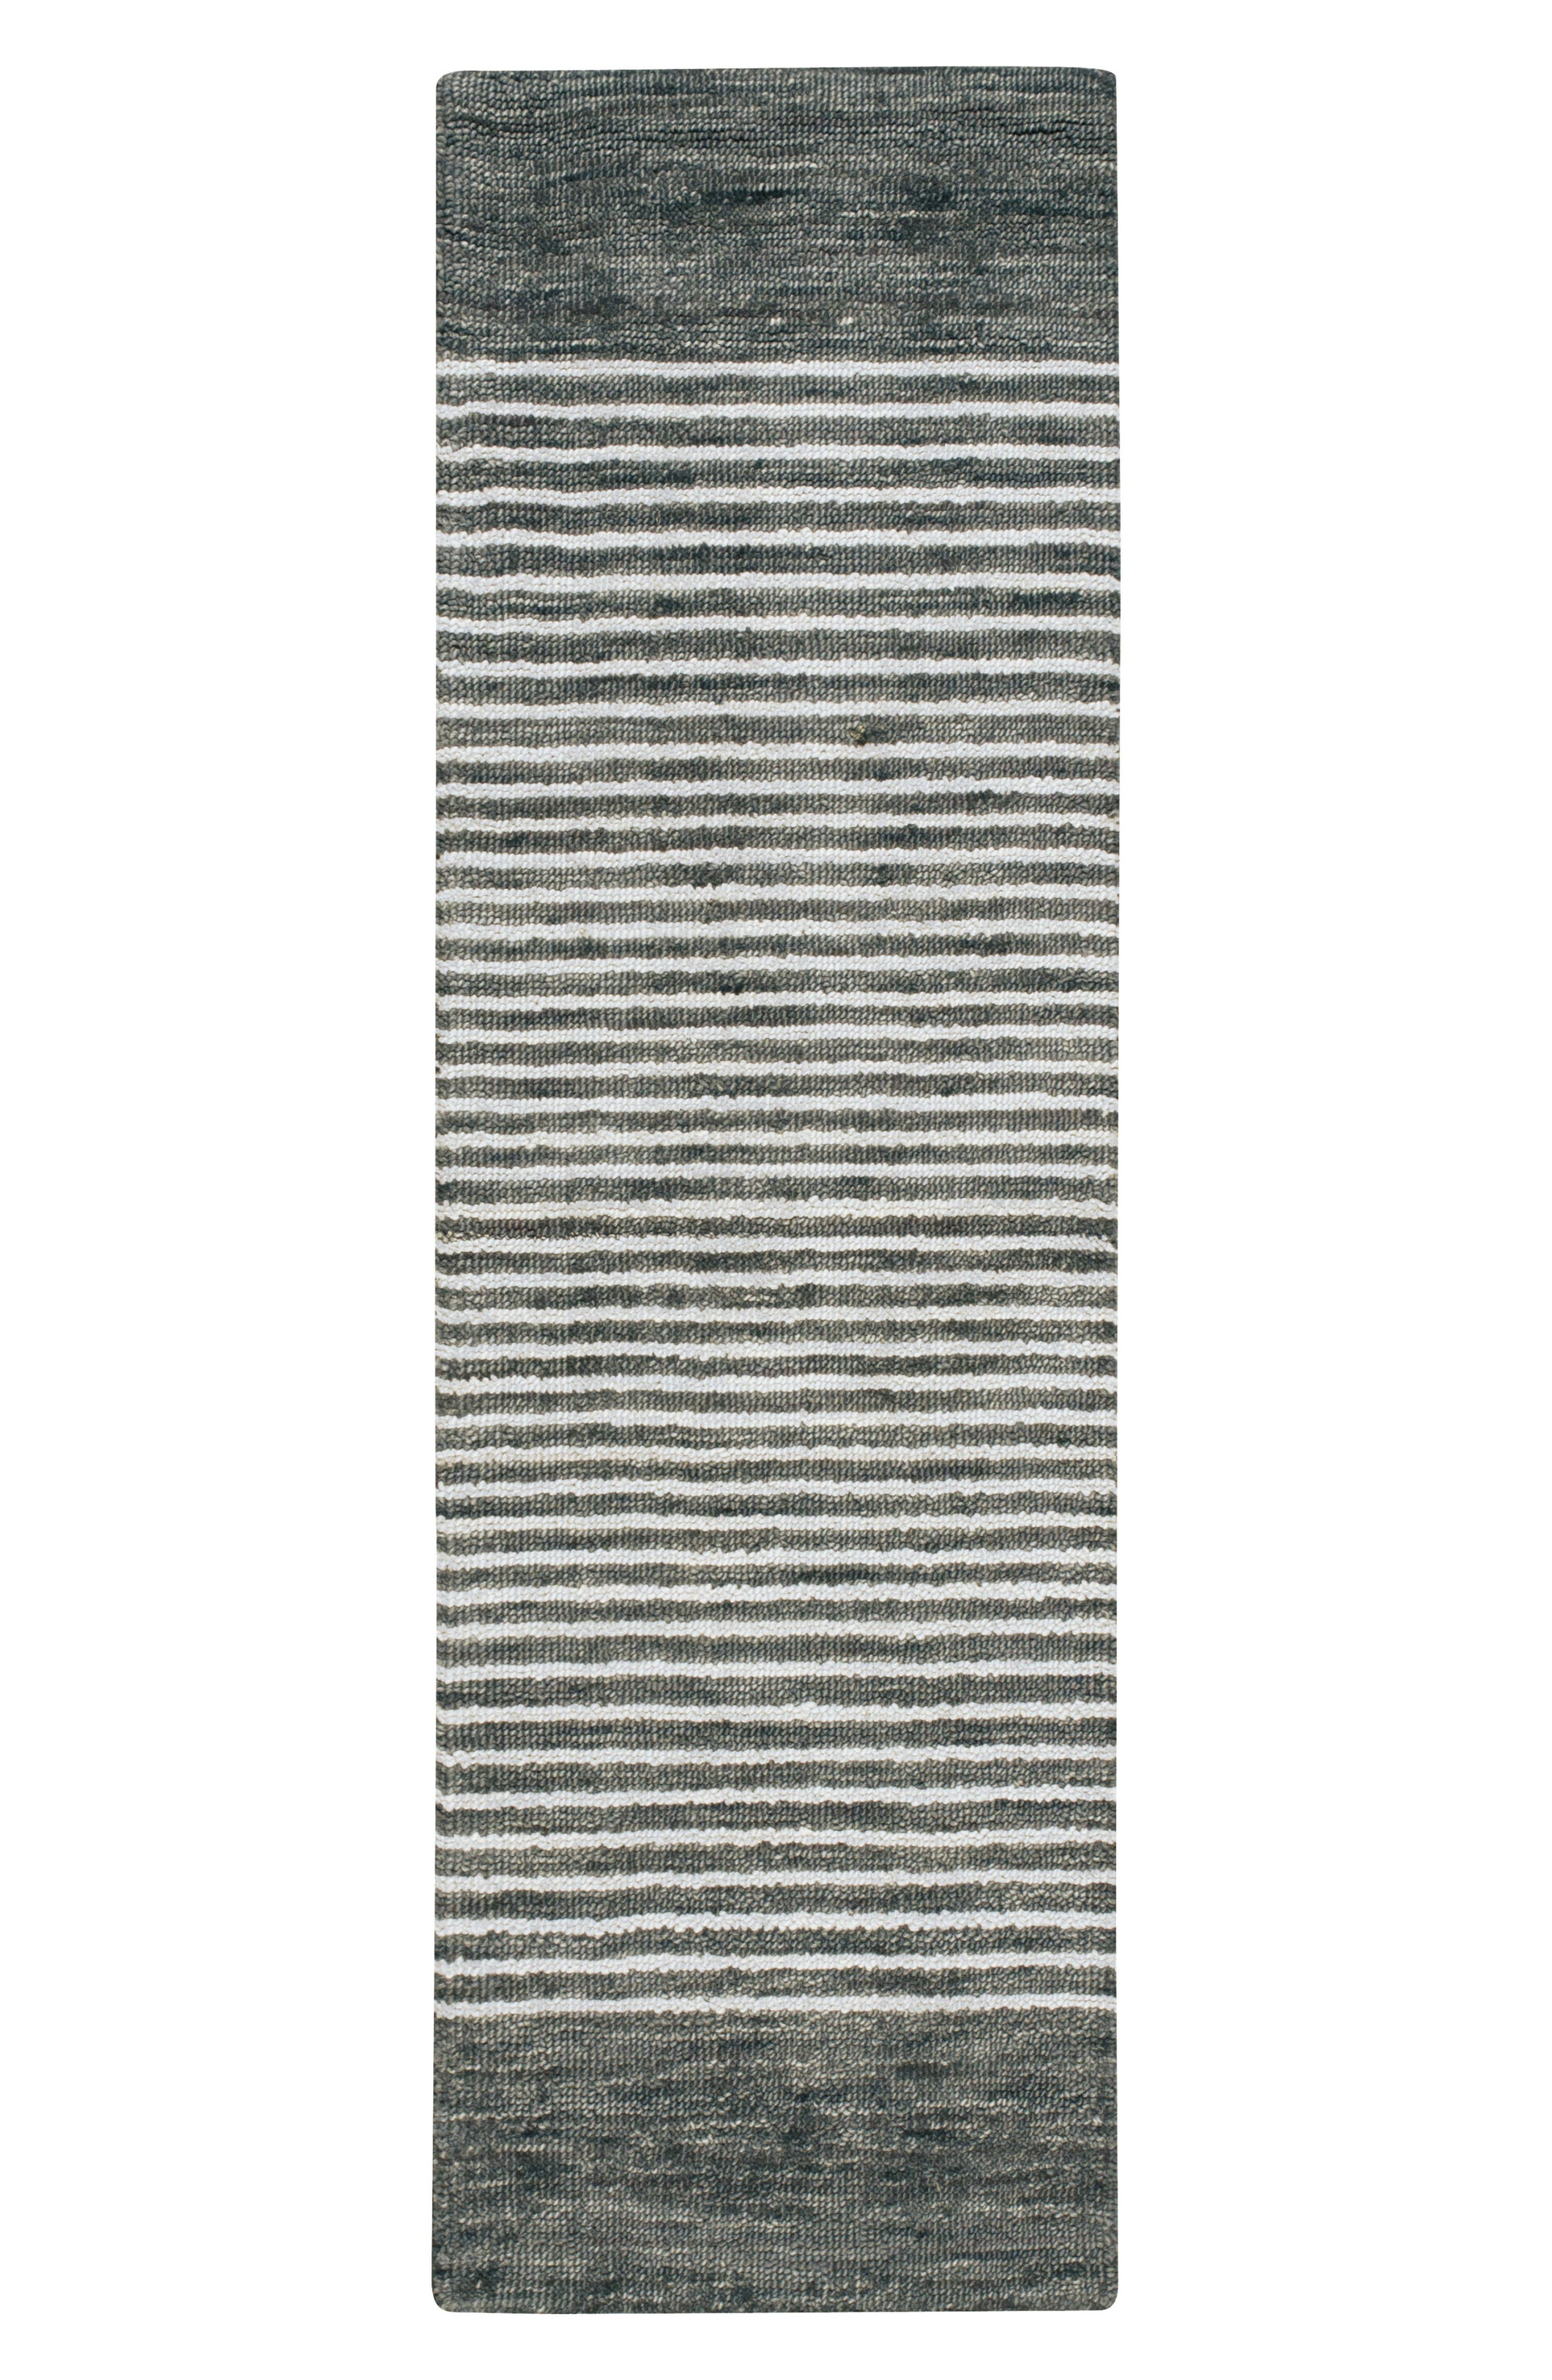 Tundra Handwoven Area Rug,                             Alternate thumbnail 3, color,                             030